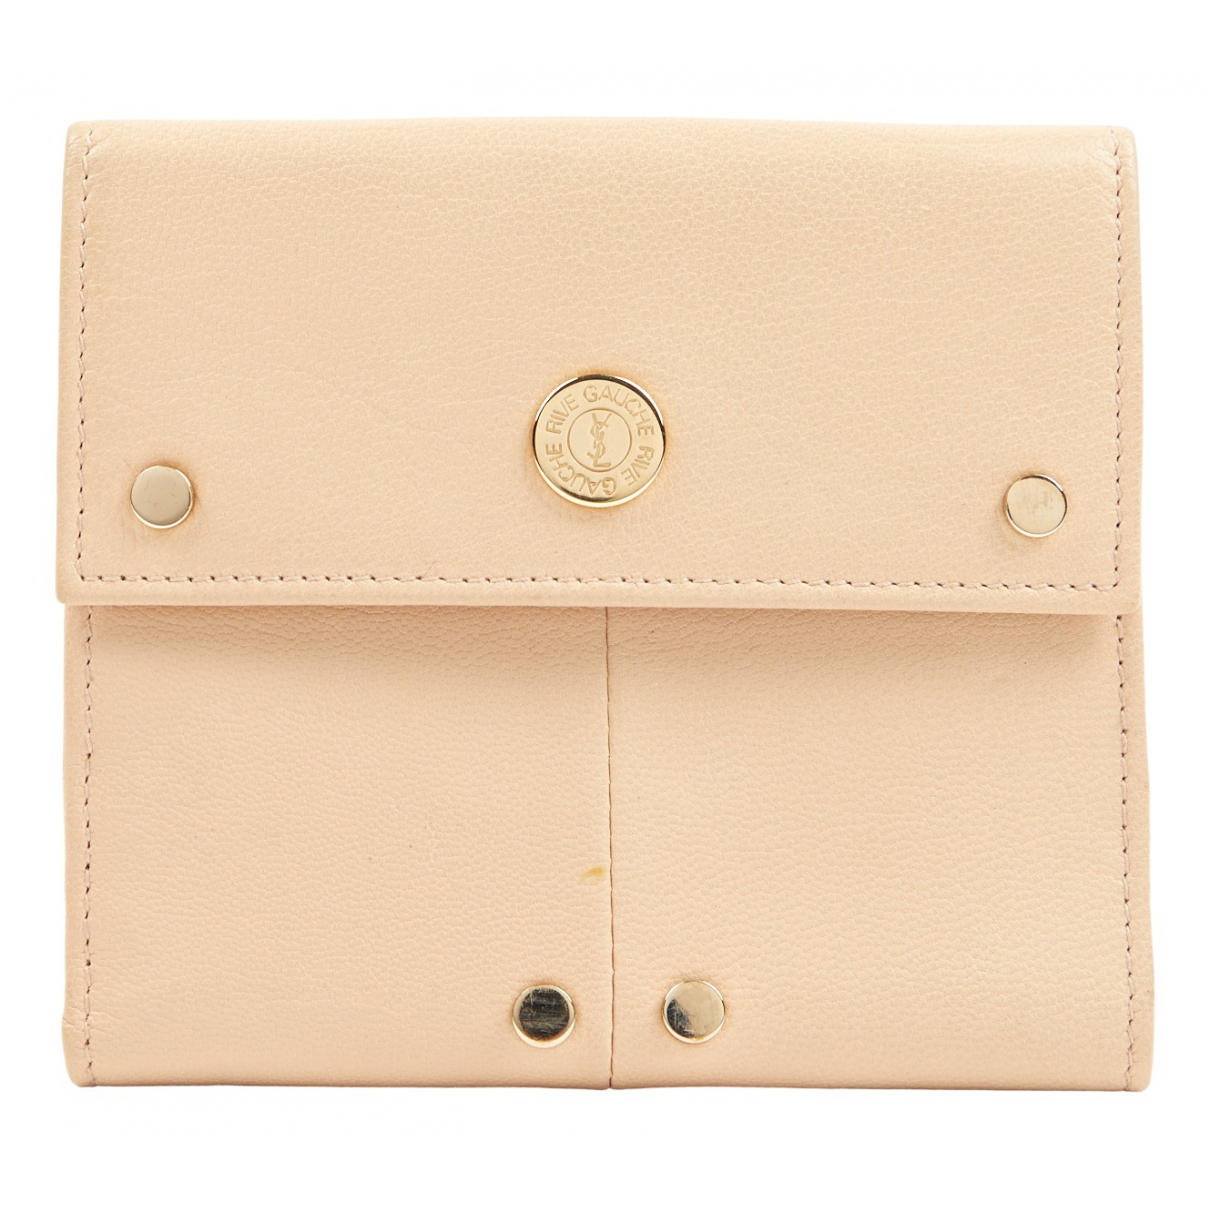 Yves Saint Laurent \N Kleinlederwaren in  Beige Leder